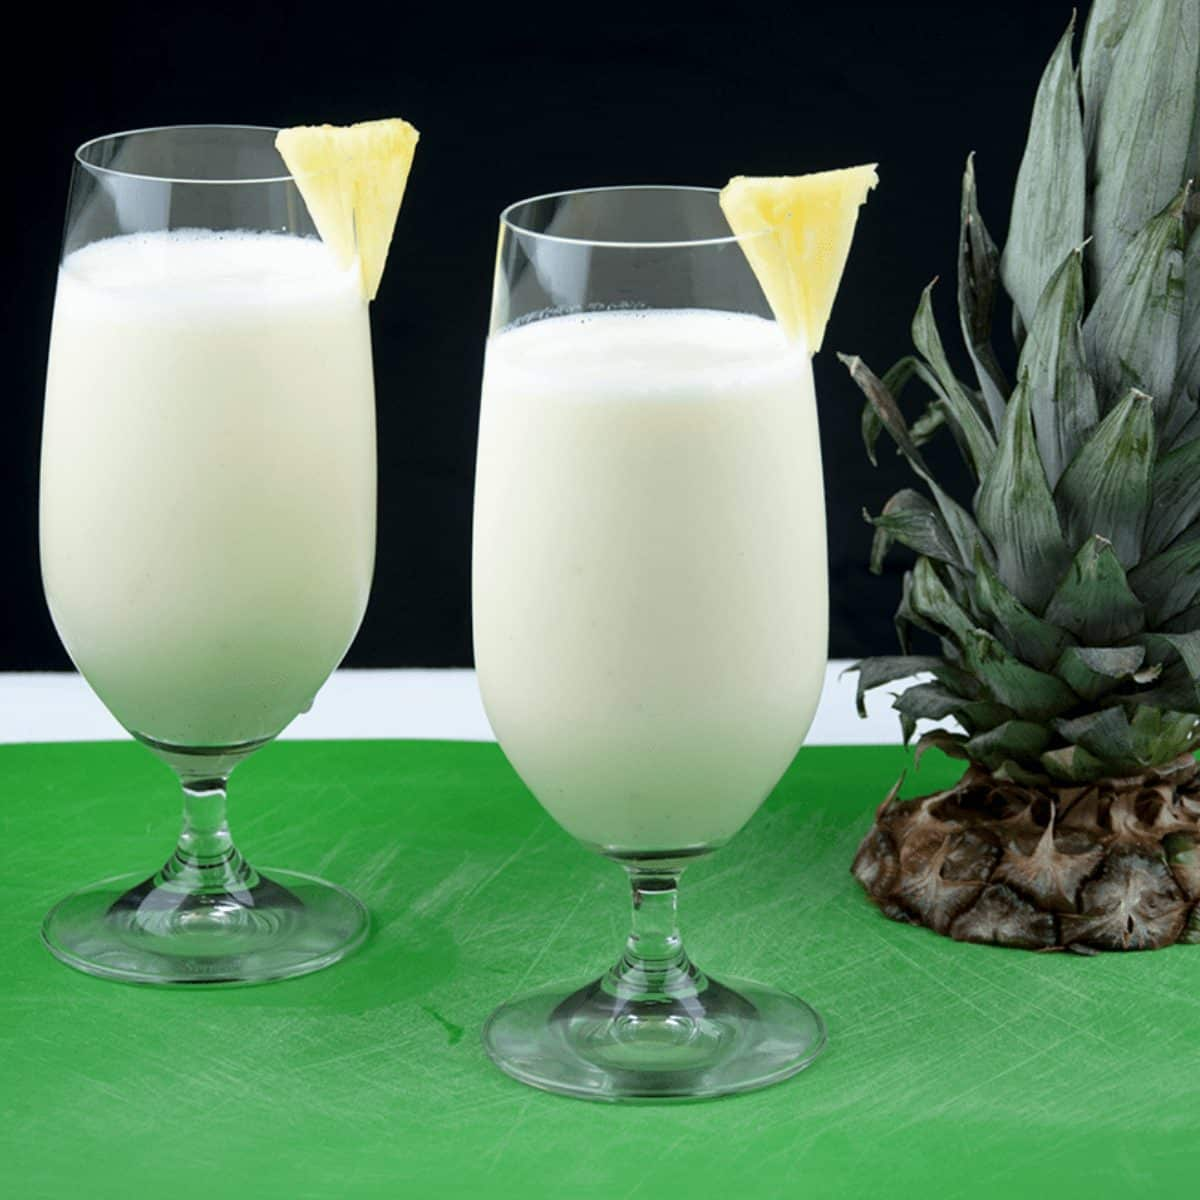 Start your day with the perfect pineapple smoothie. Just 3 ingredients! Pineapple, vanilla yoghurt, and ice. Simple. Zero fat and only 274 calories! Yum!! theyumyumclub.com